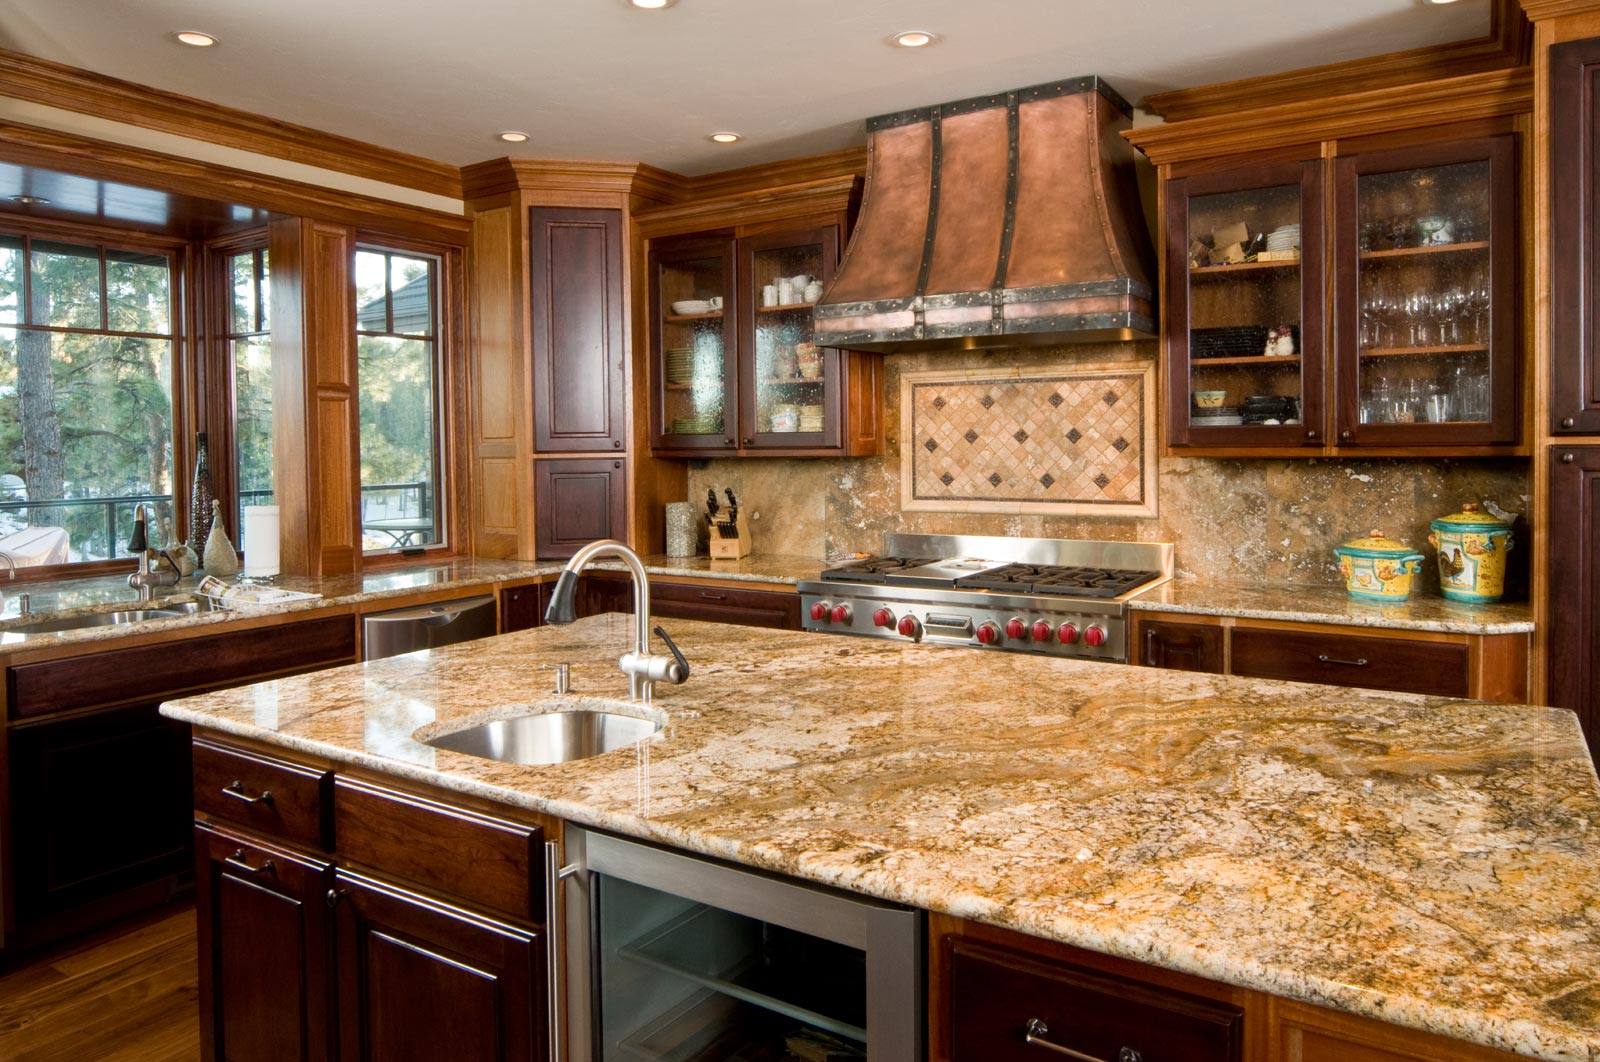 ... kitchen countertops many older kitchens featured laminate countertops